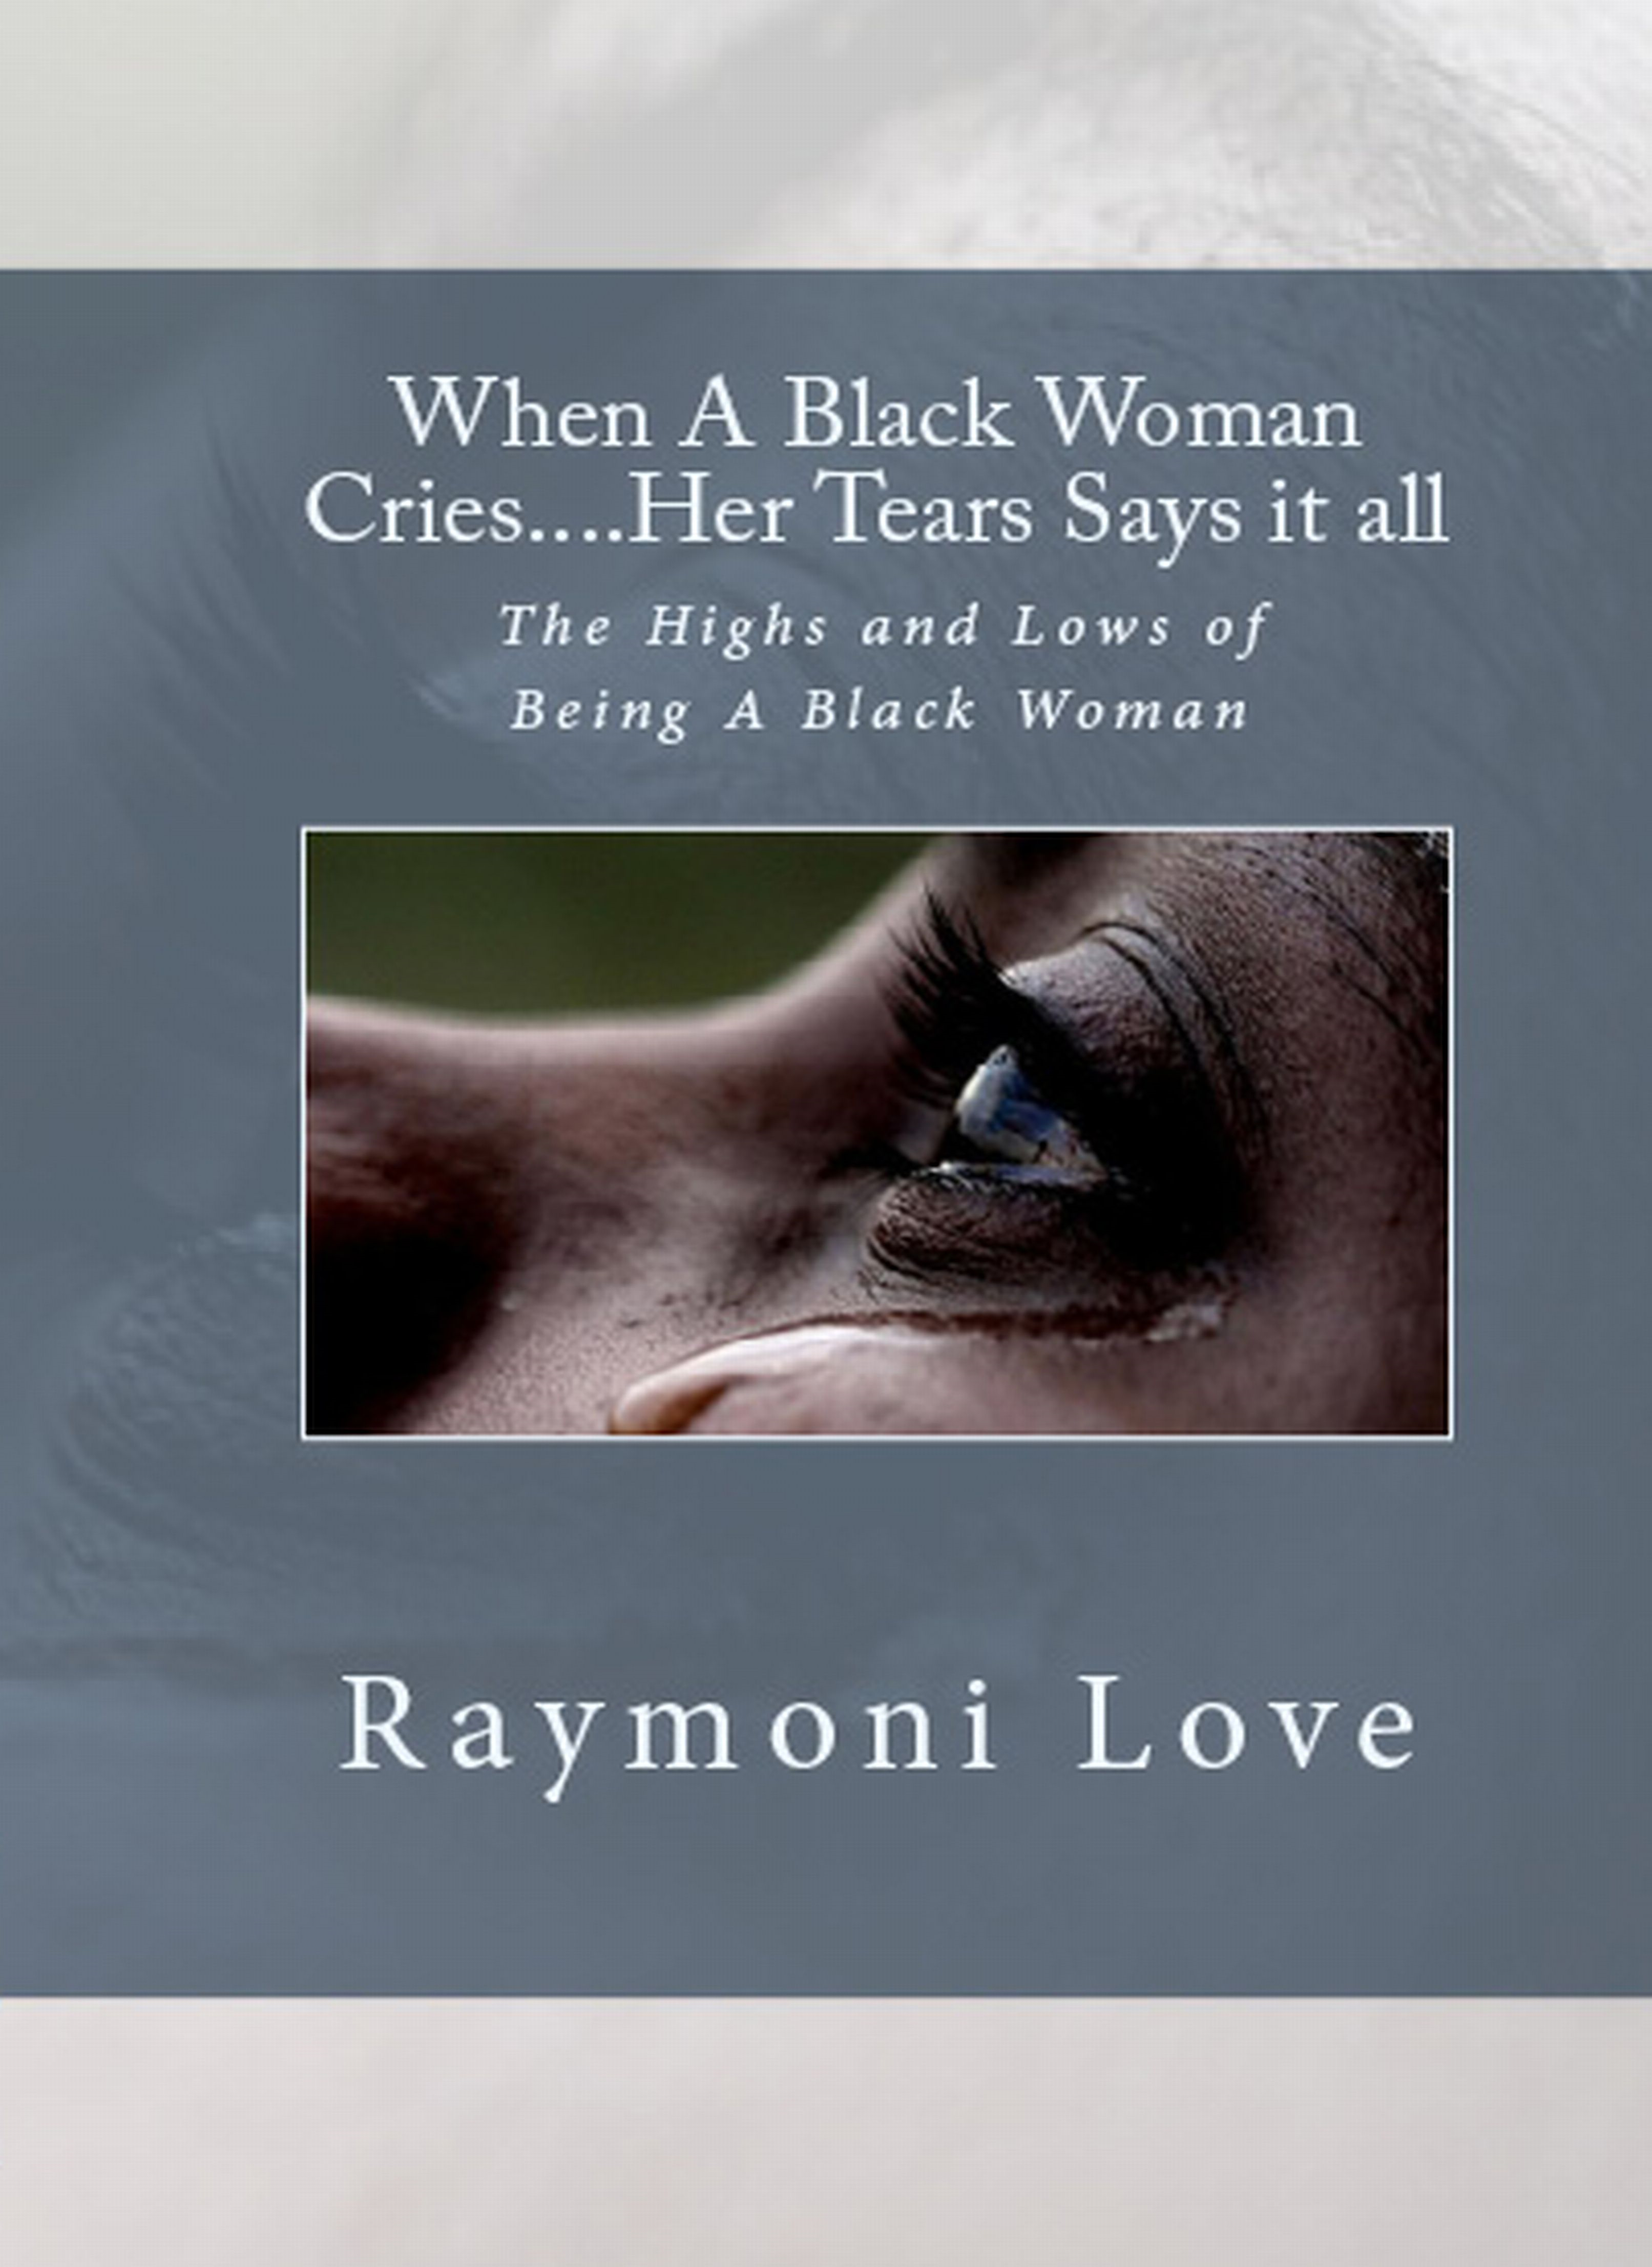 When A Black Woman Cries....Her Tears Says it all By: Raymoni Love